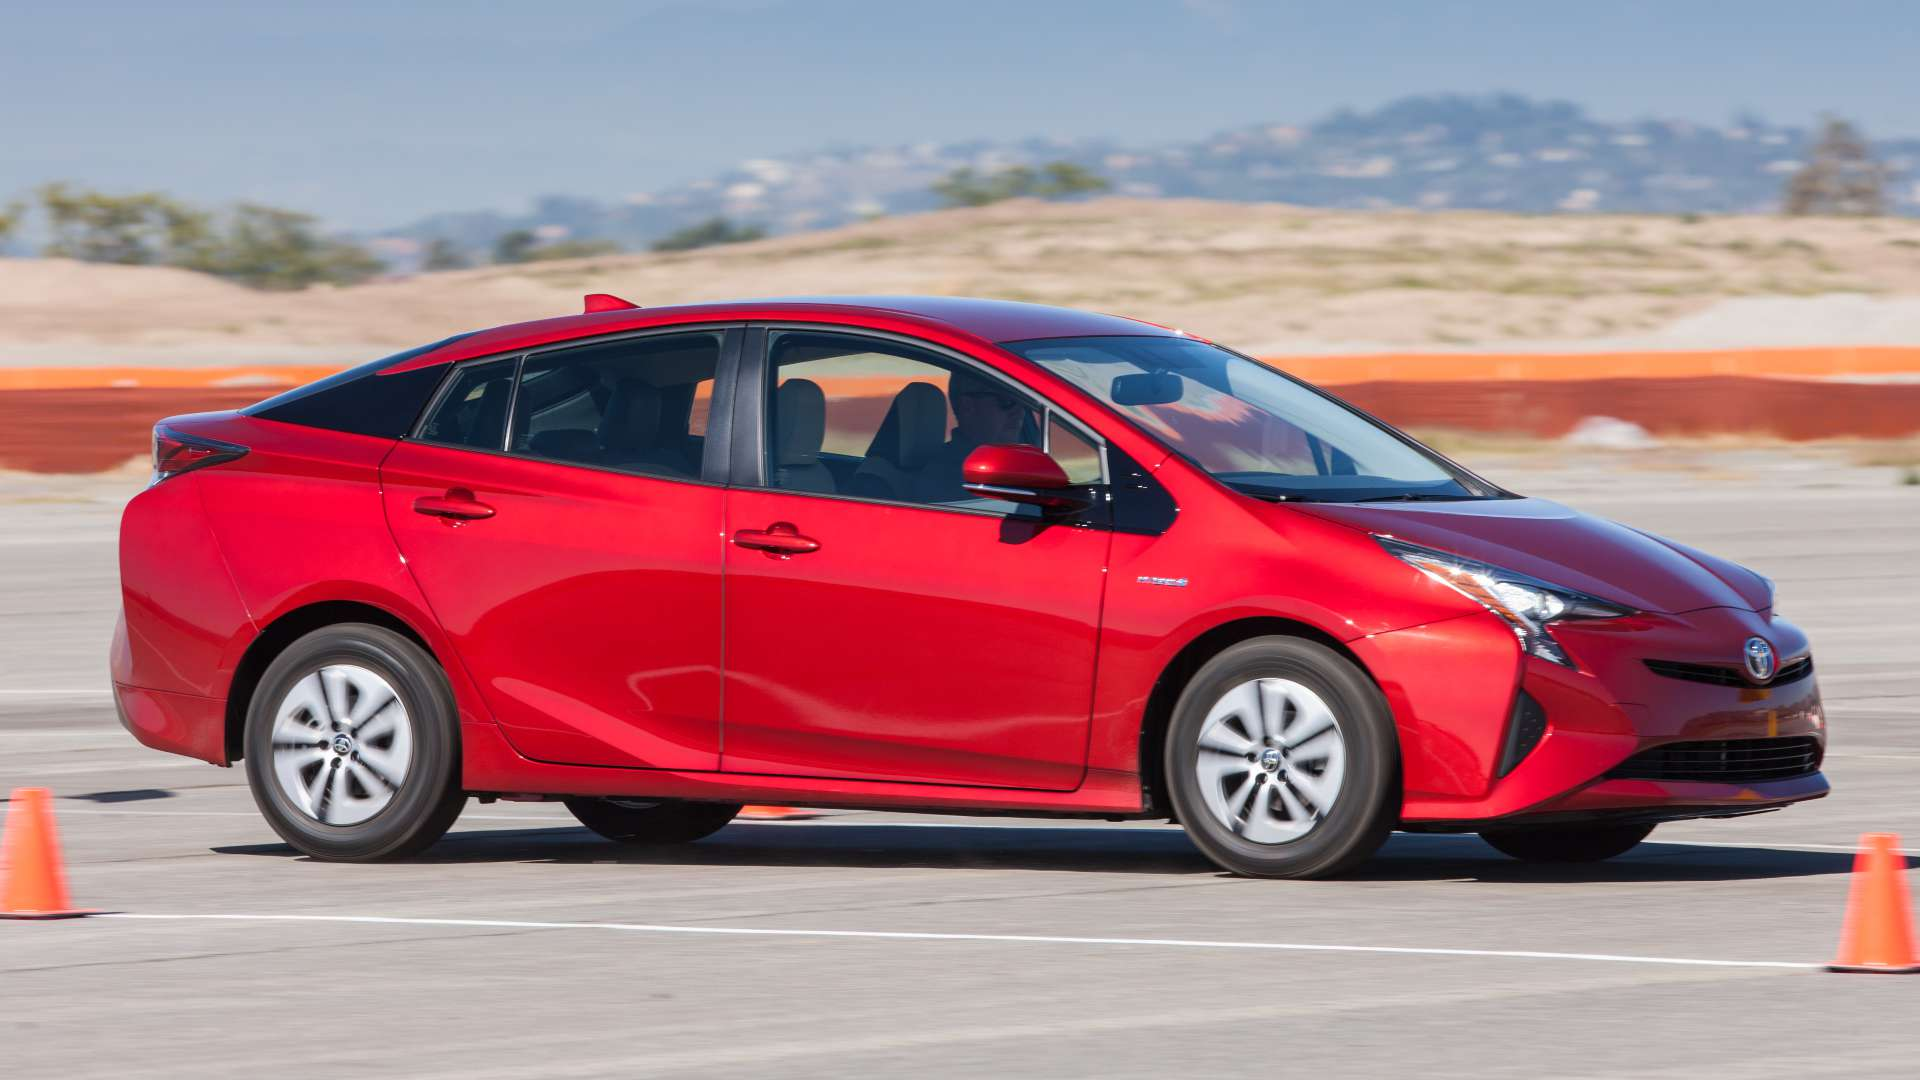 2016 Toyota Prius Reviews Ratings Prices Consumer Reports